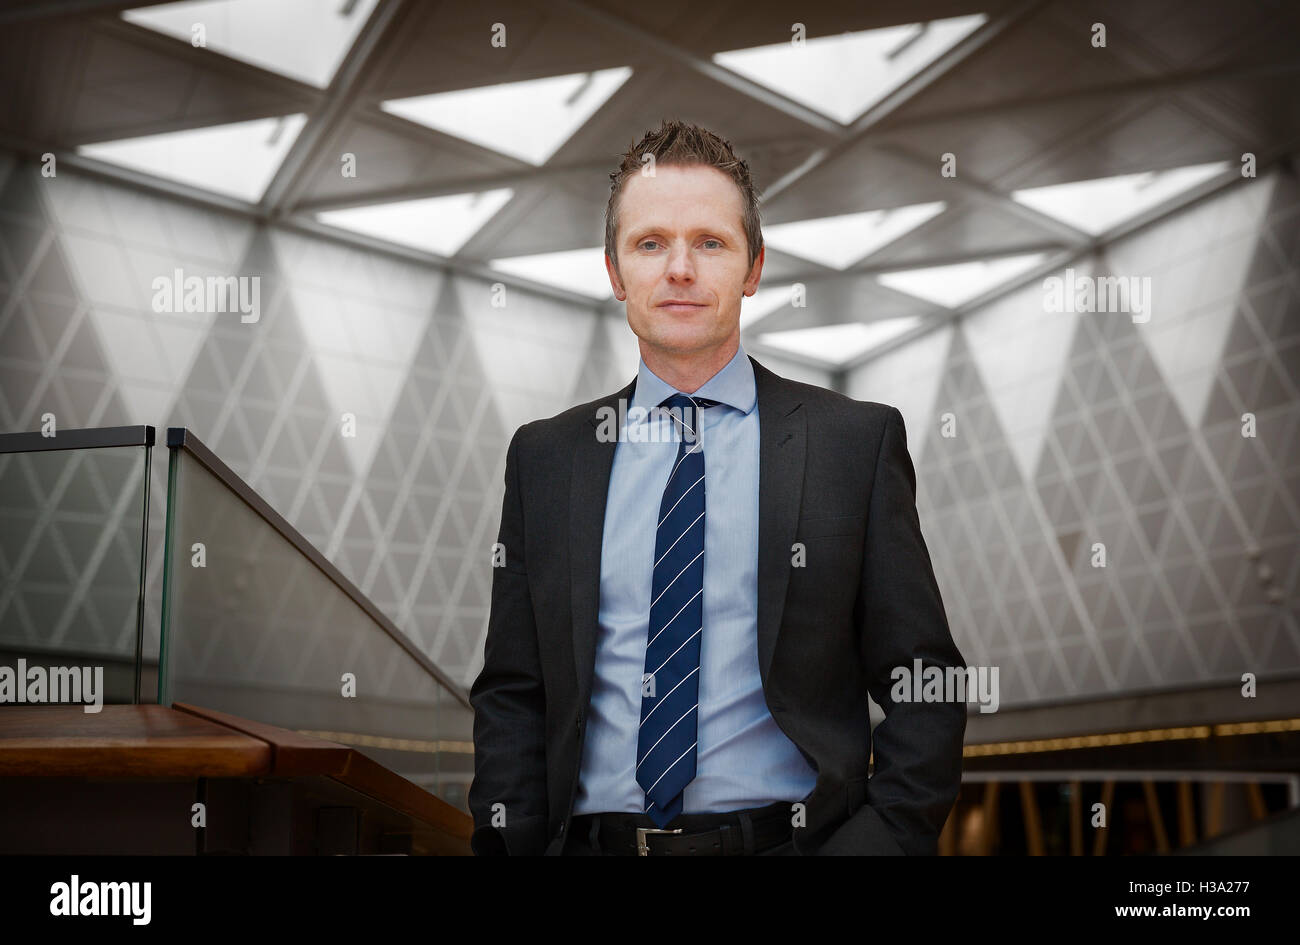 Confident businessman standing in a corporate building. - Stock Image